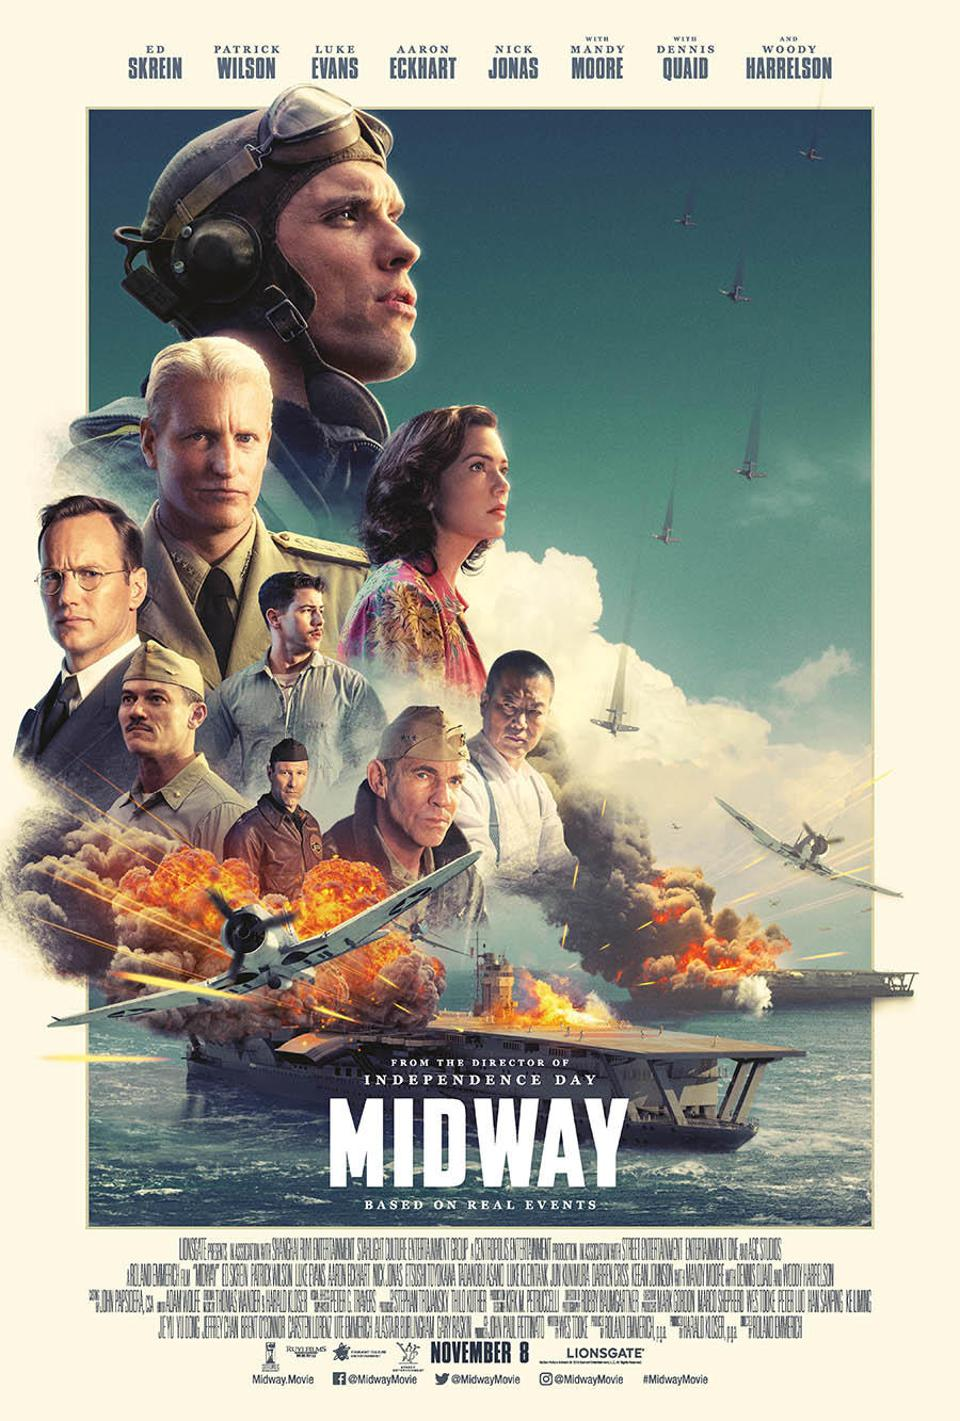 4K Review: 'Midway' Is Roland Emmerich's Greatest Film